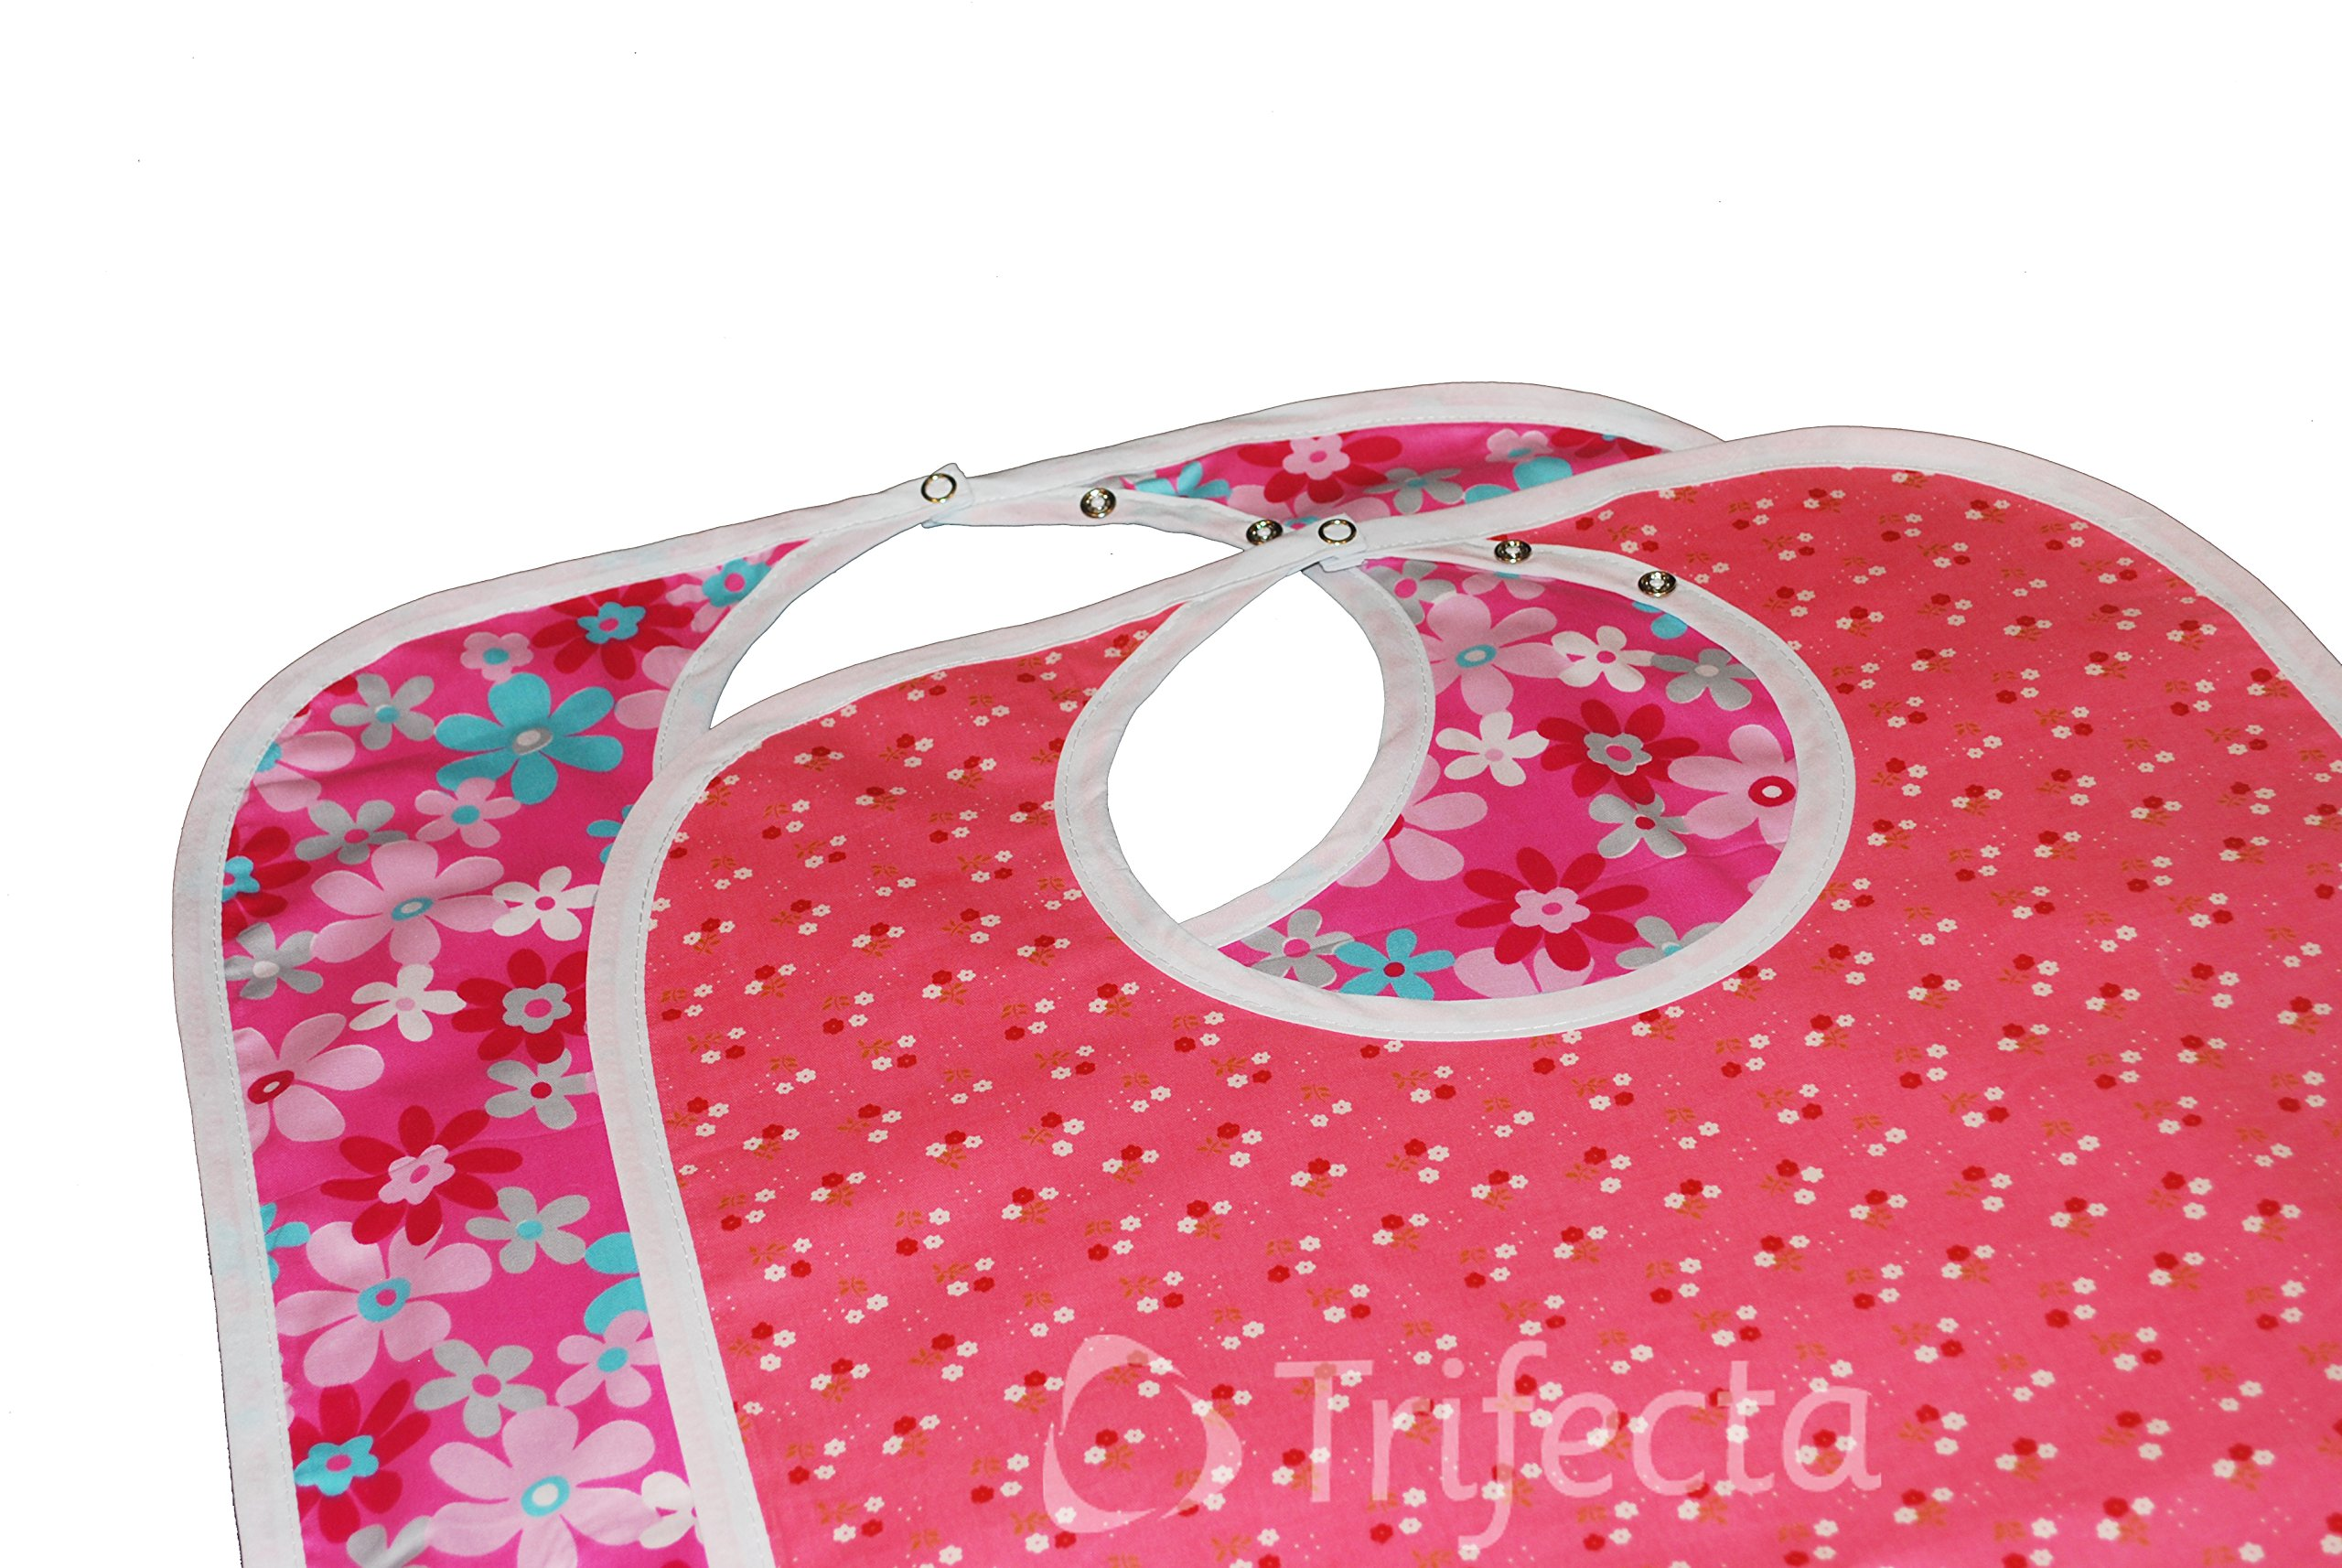 Large Extra Long, Reusable Washable Clothing Spill, Mealtime Protector, Waterproof Adult Sized Bib (Pk/2)